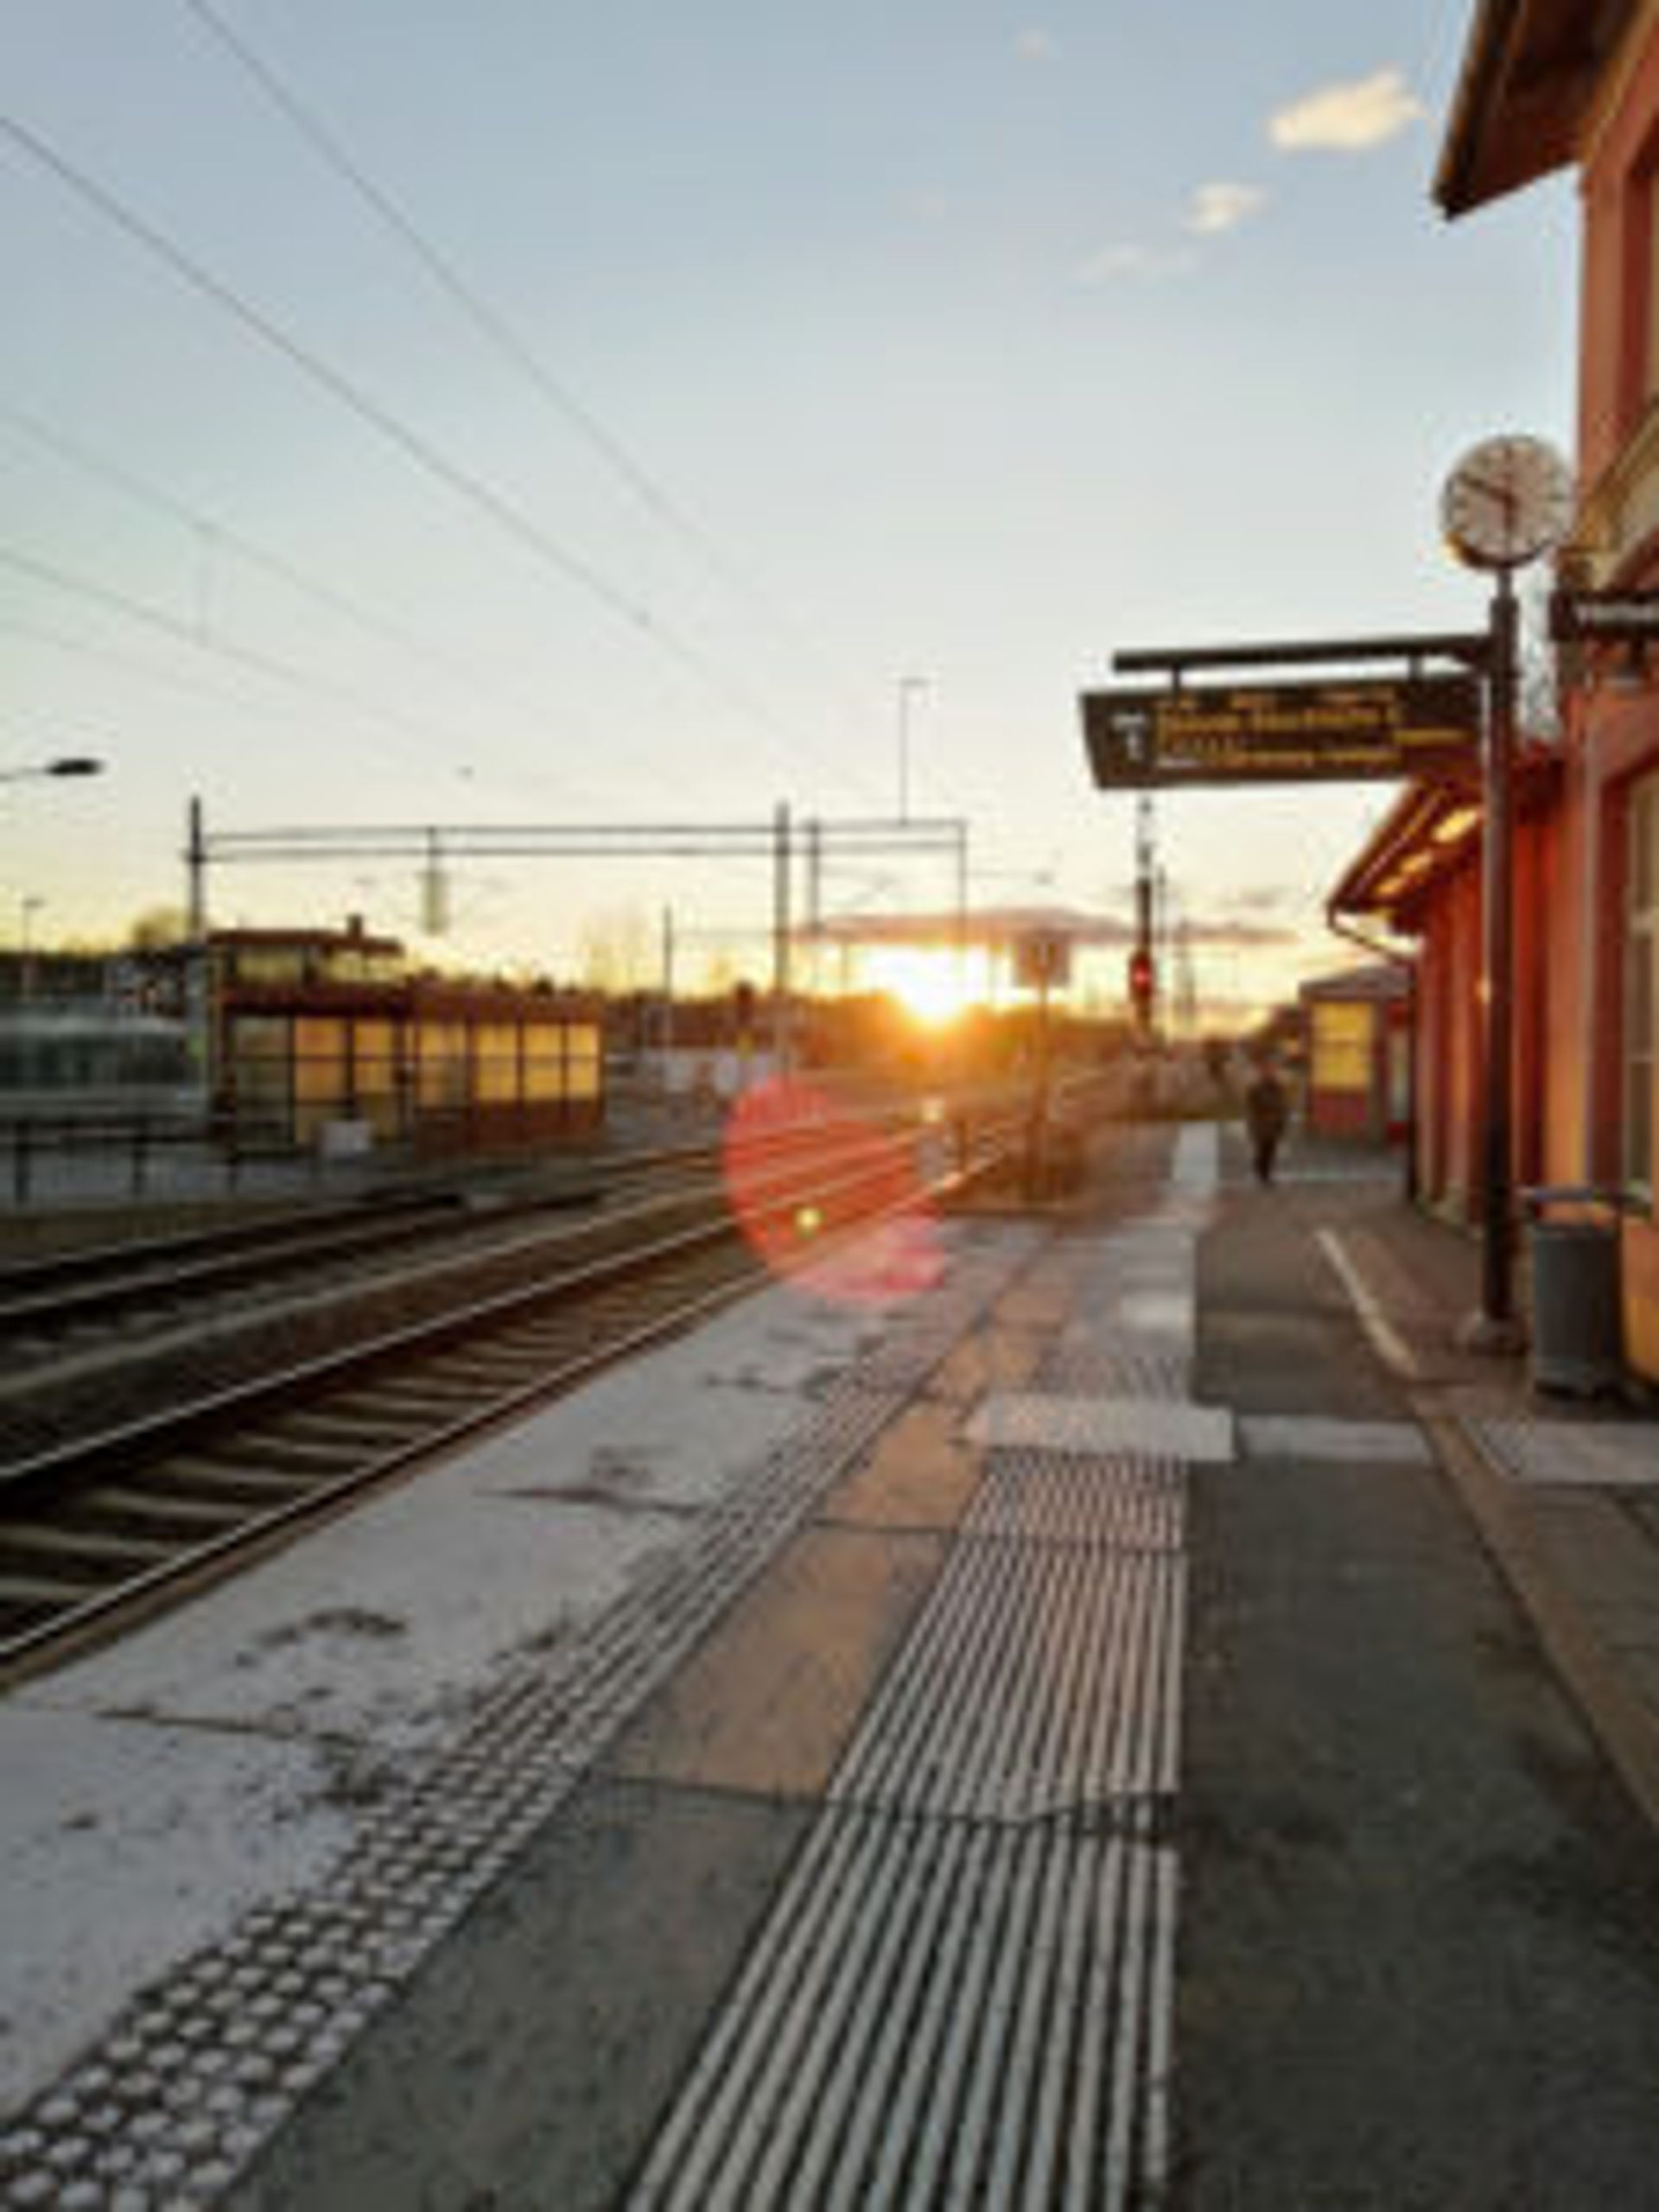 Sunset at a train station in Alingsås.